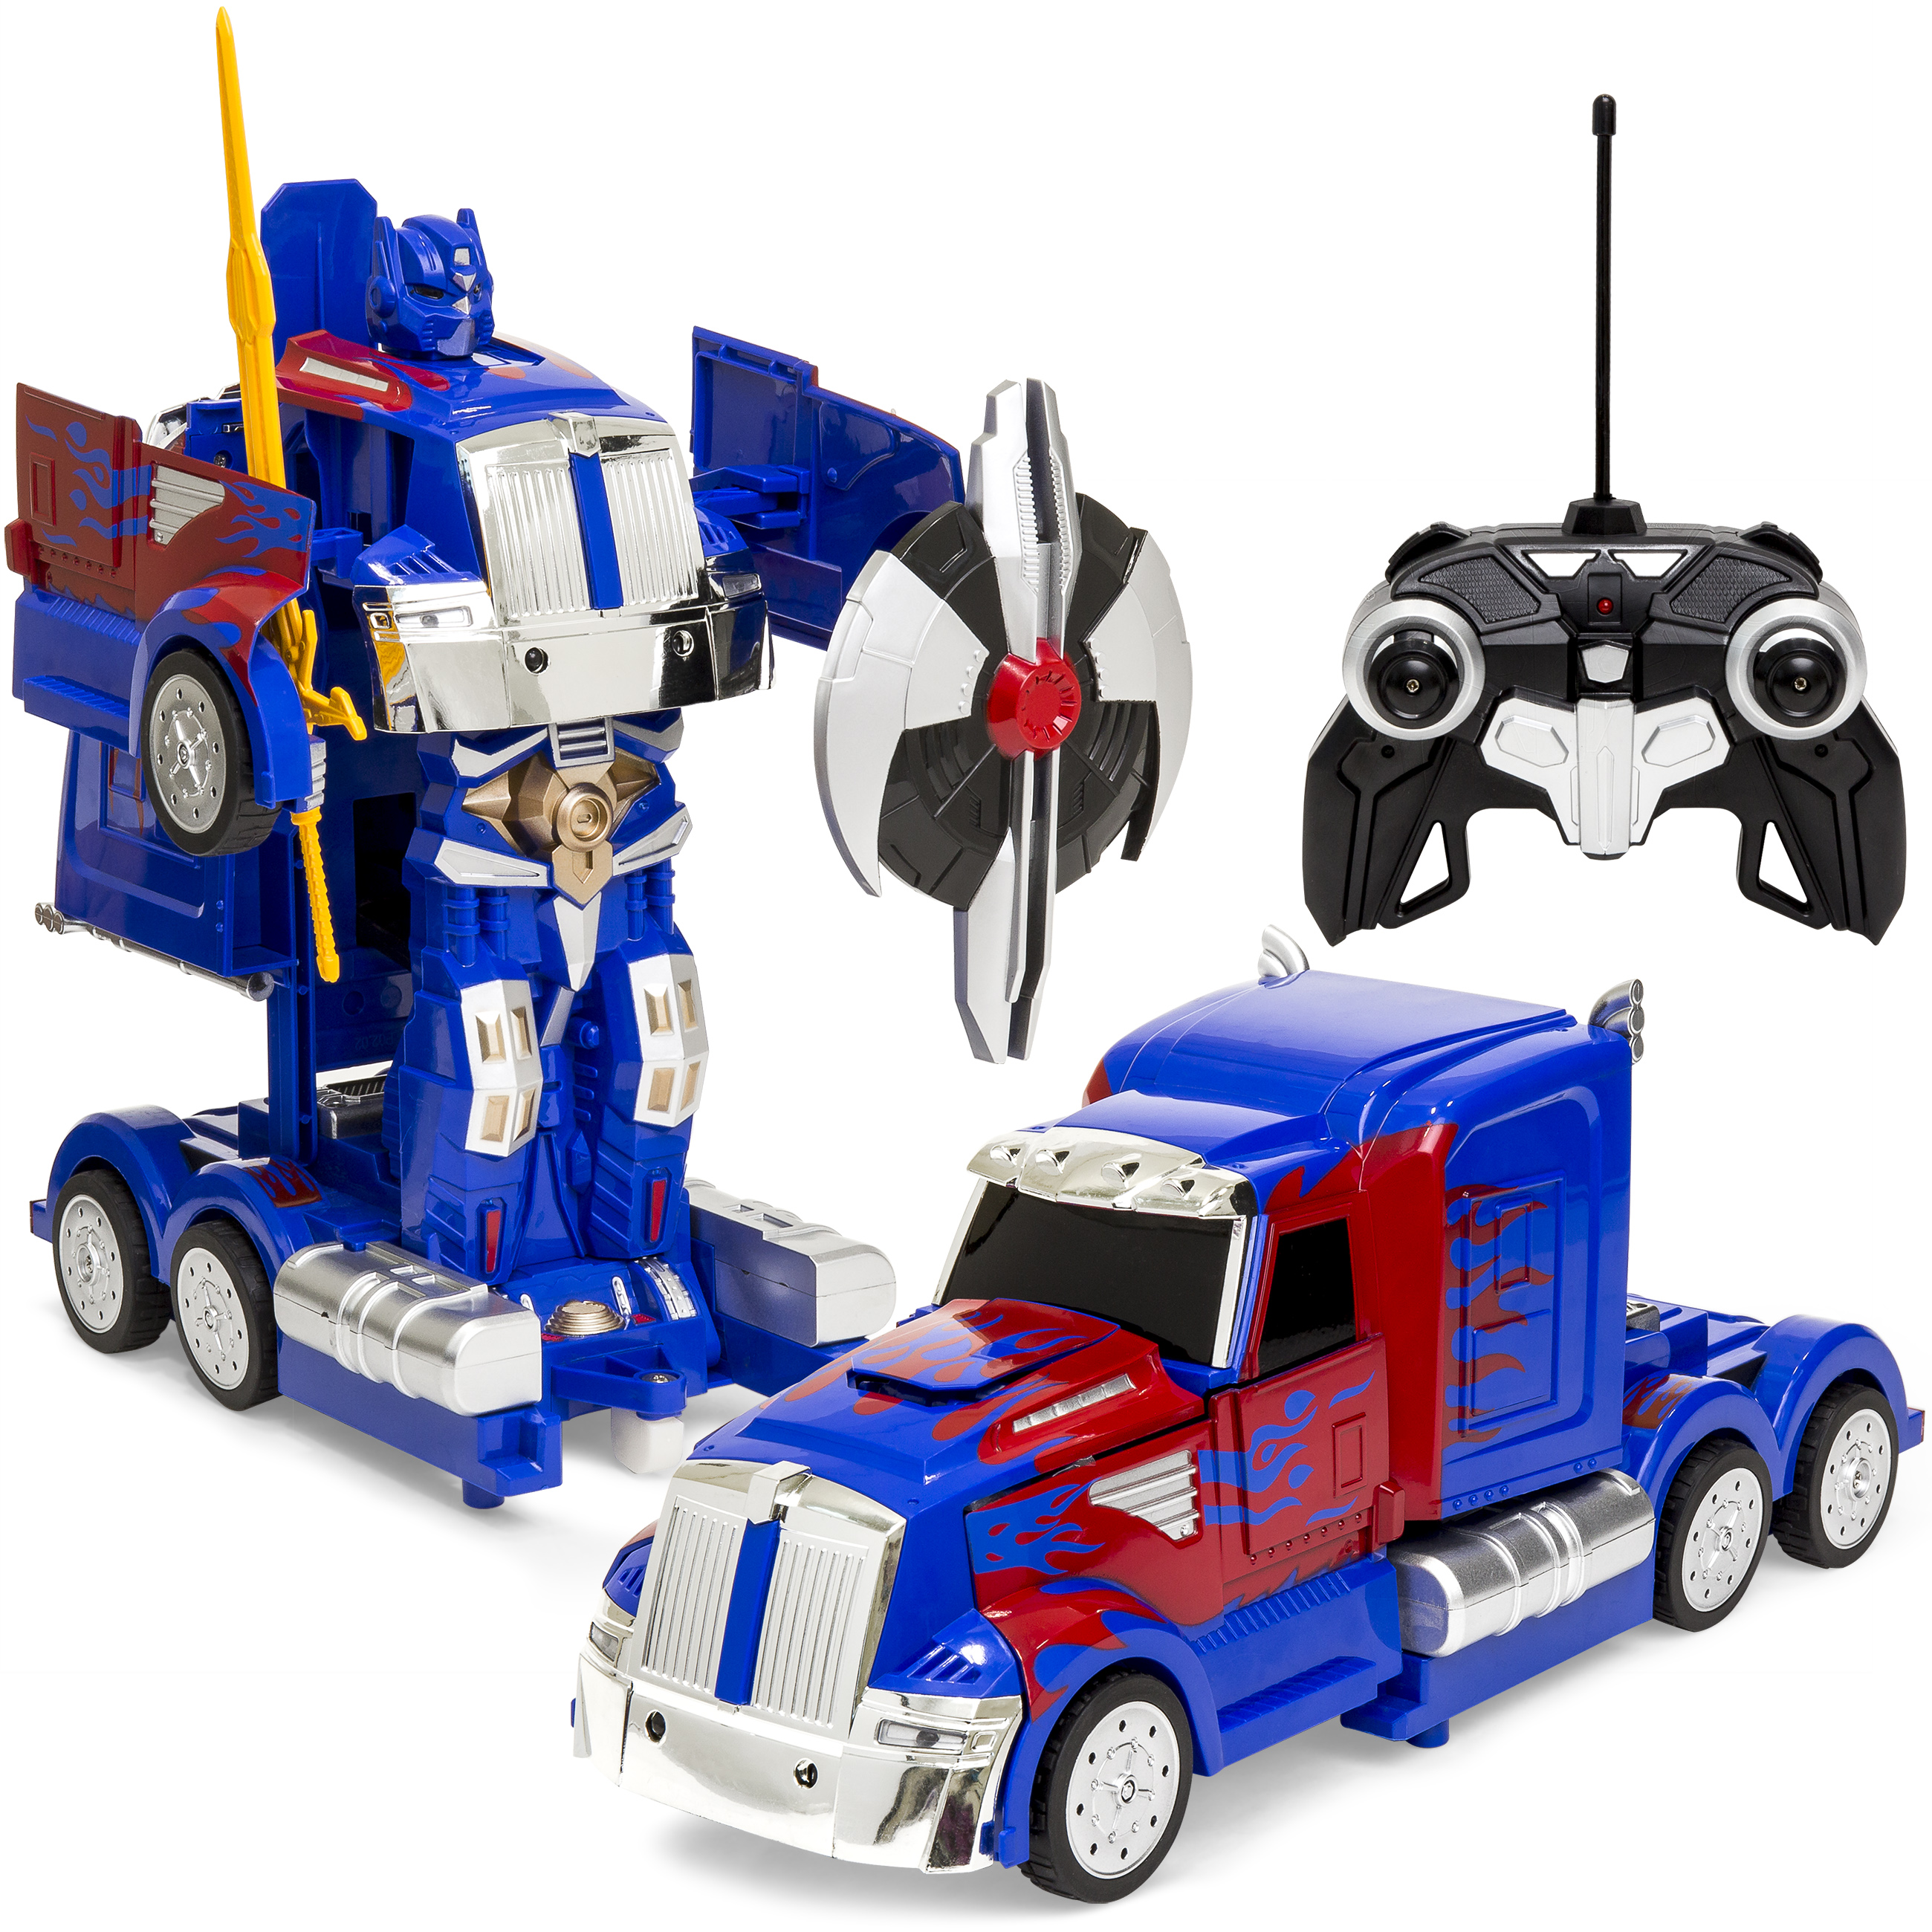 Best Choice Products 27MHz Kids Transforming RC Semi-Truck Robot Remote Control Toy w  2 Dance Modes, Music,... by Best Choice Products